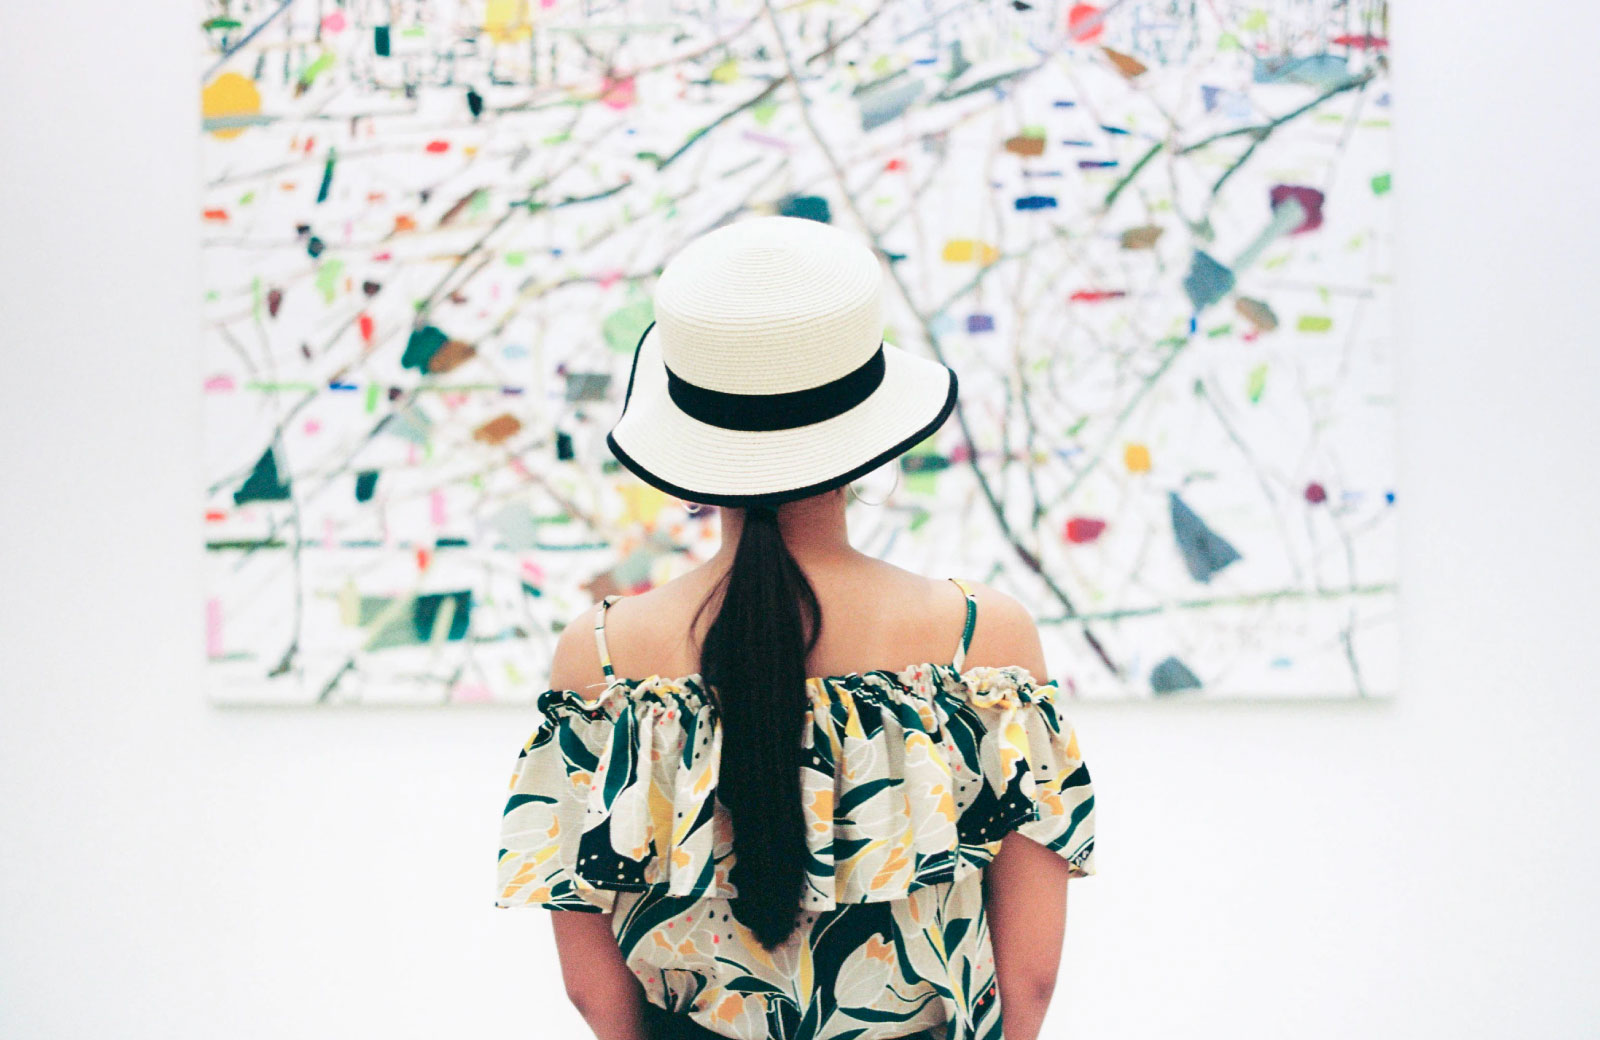 woman in a dress and hat looking at a painting